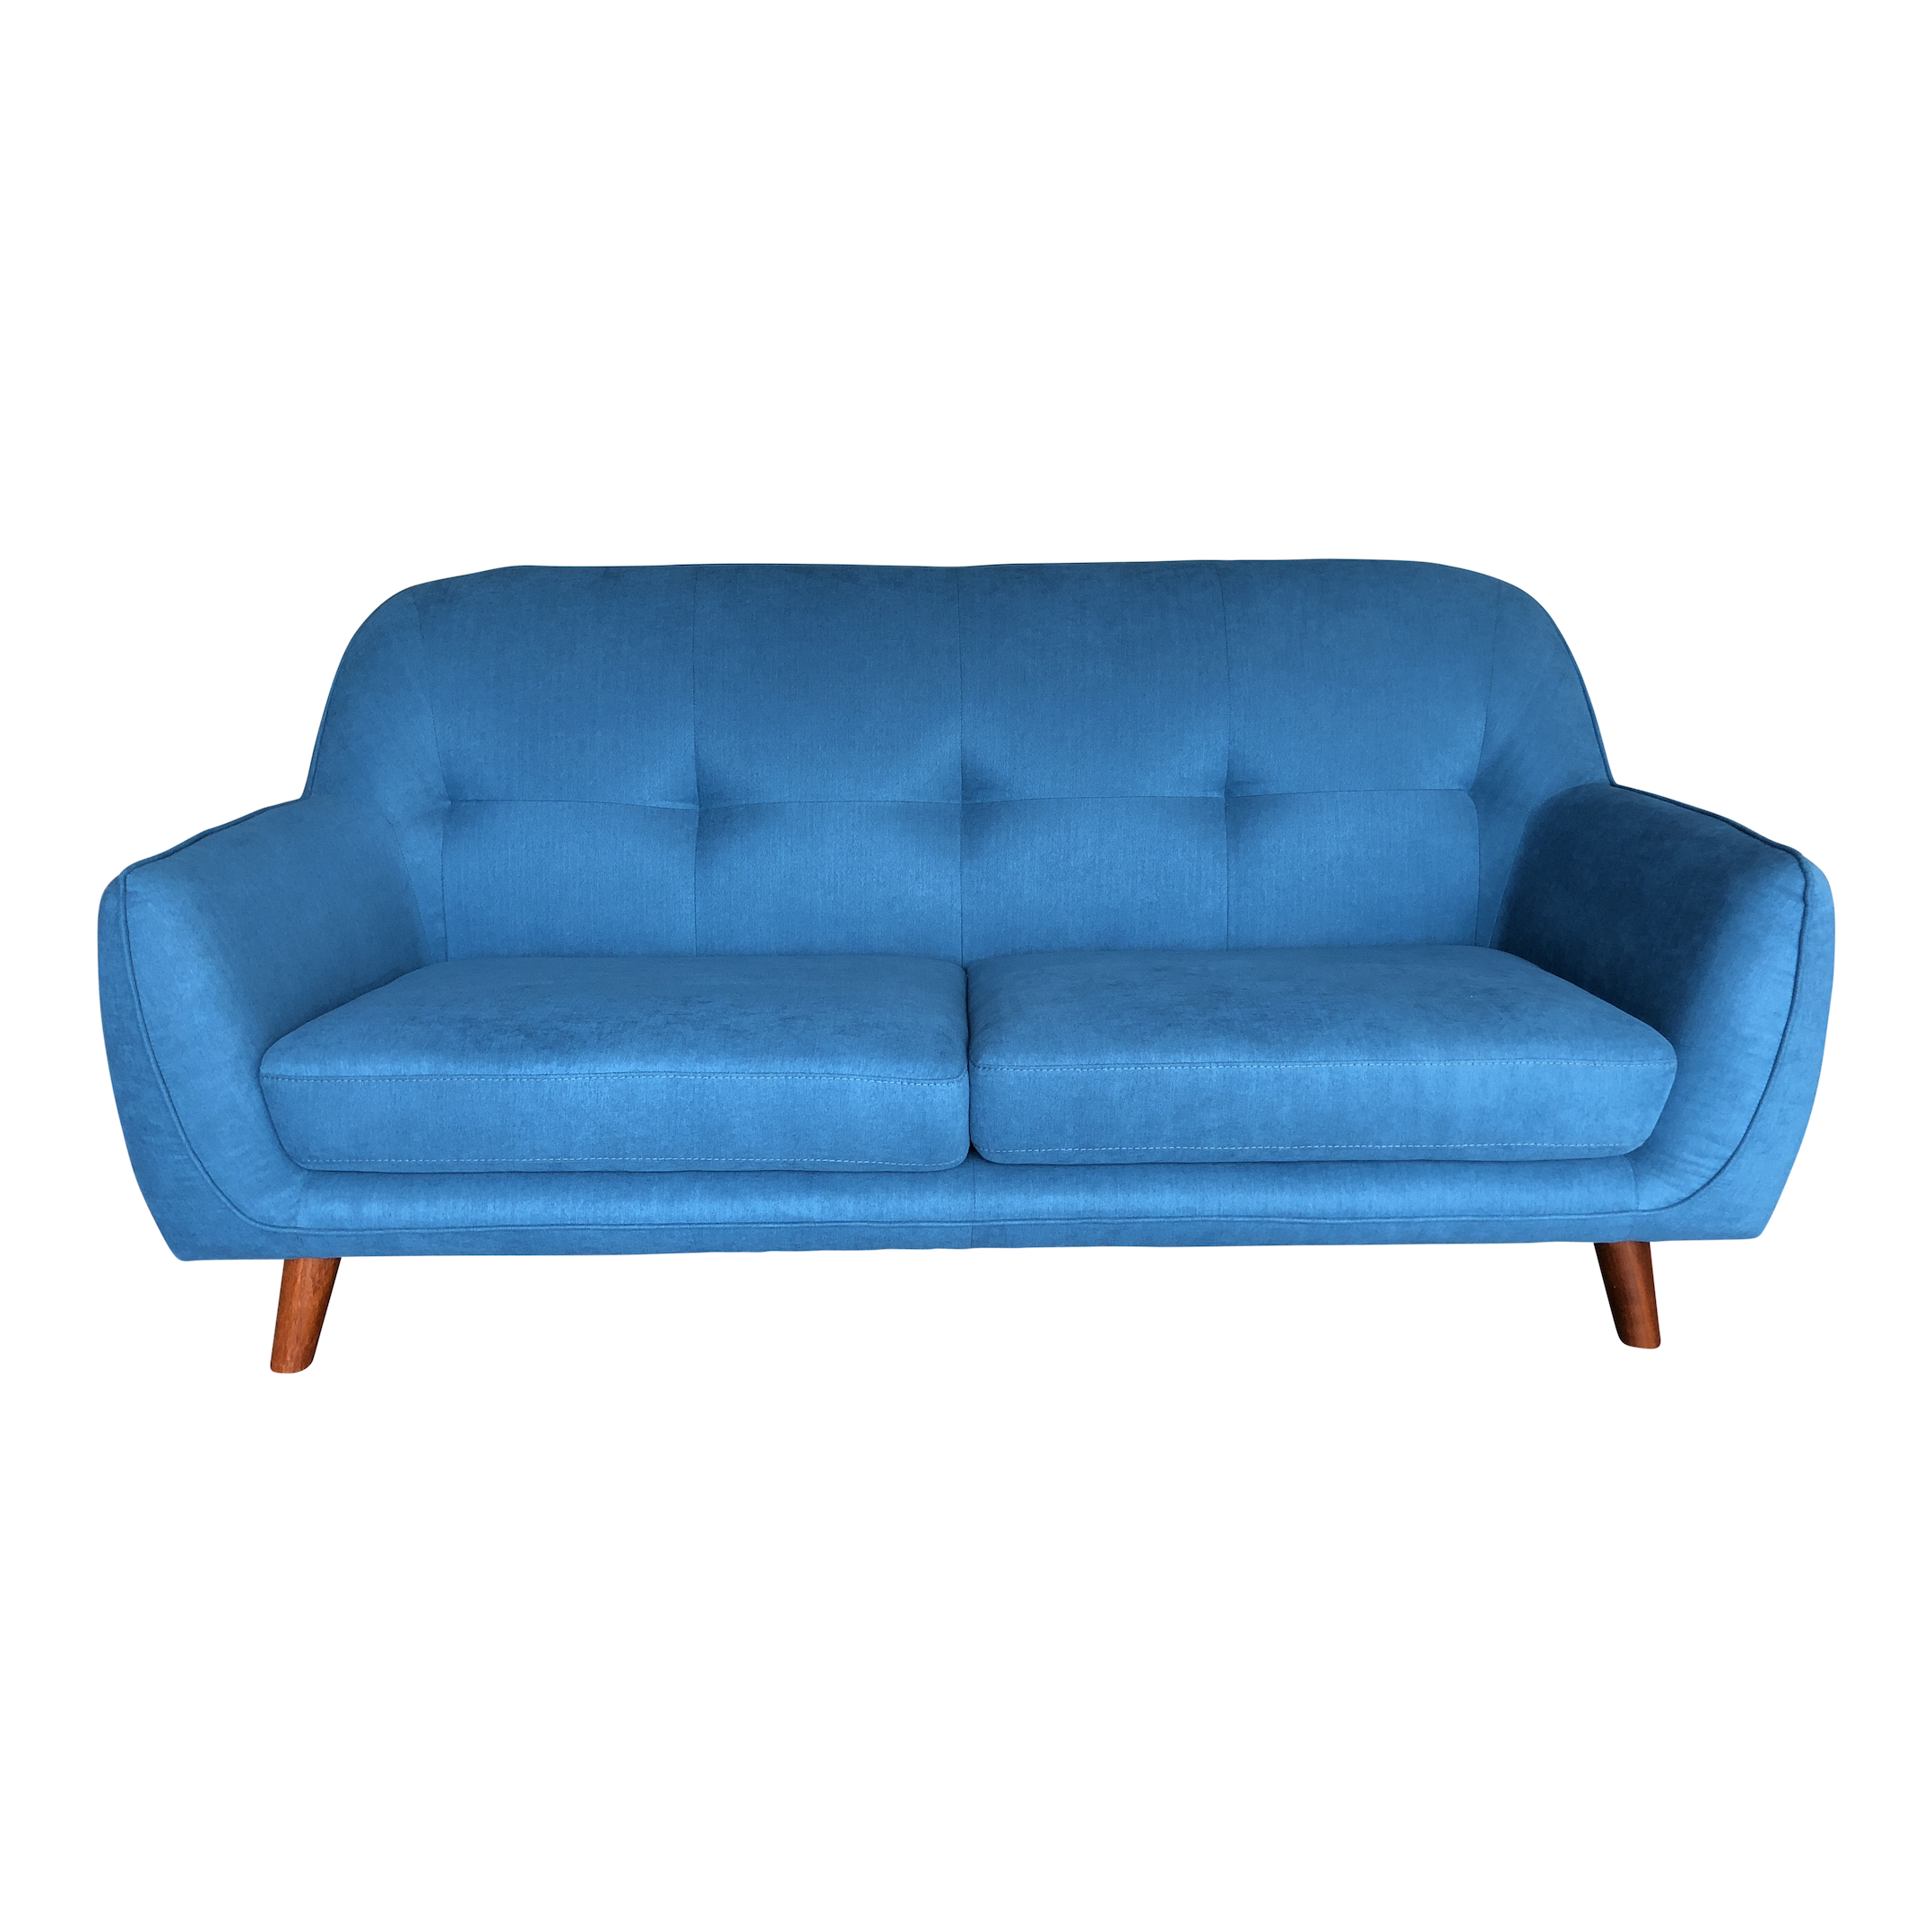 Foster Sofa 3 Seater, Marine Blue